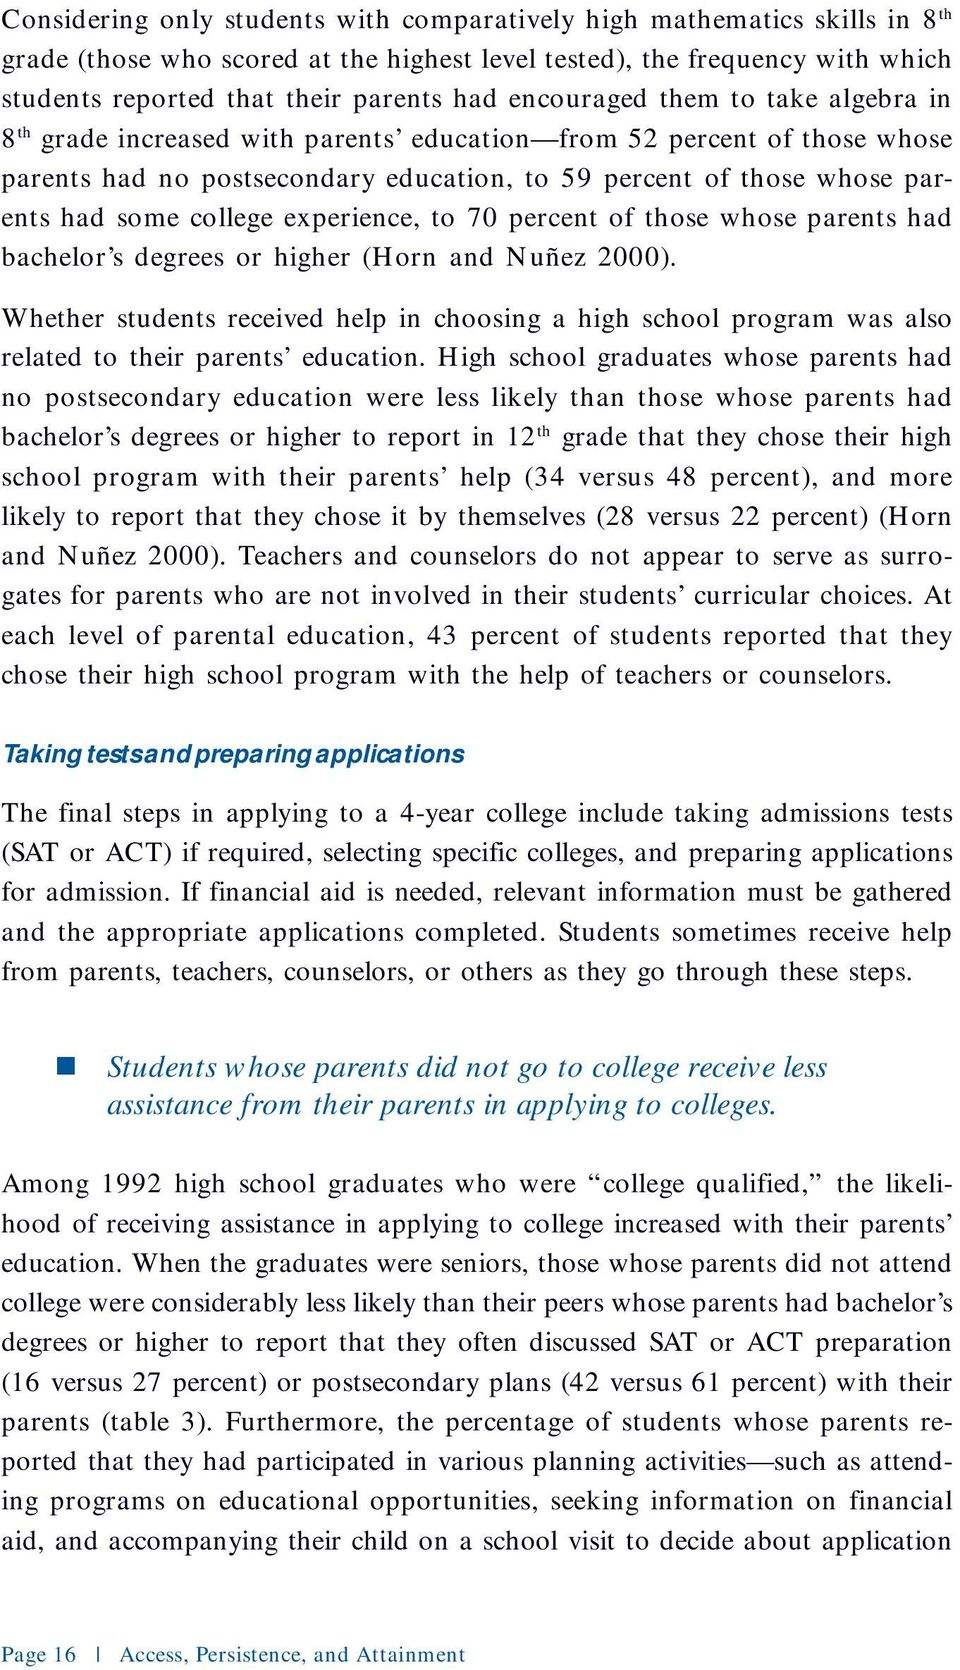 college experience, to 70 percent of those whose parents had bachelor s degrees or higher (Horn and Nuñez 2000).